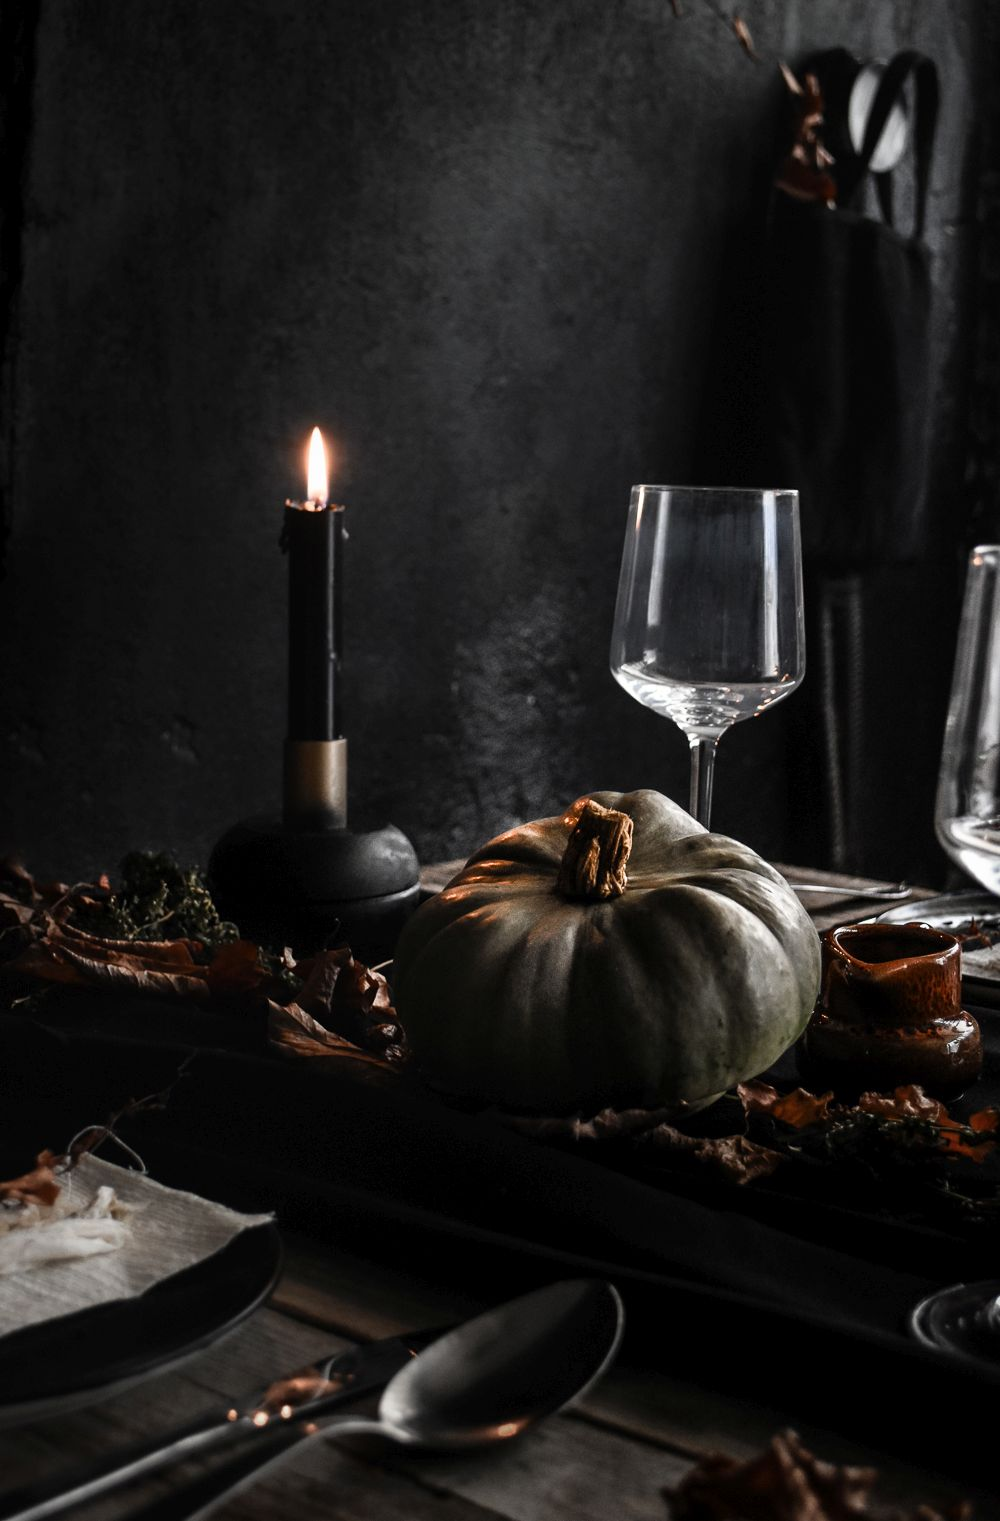 Halloween Table Setting Idea - black candles and pumpkin